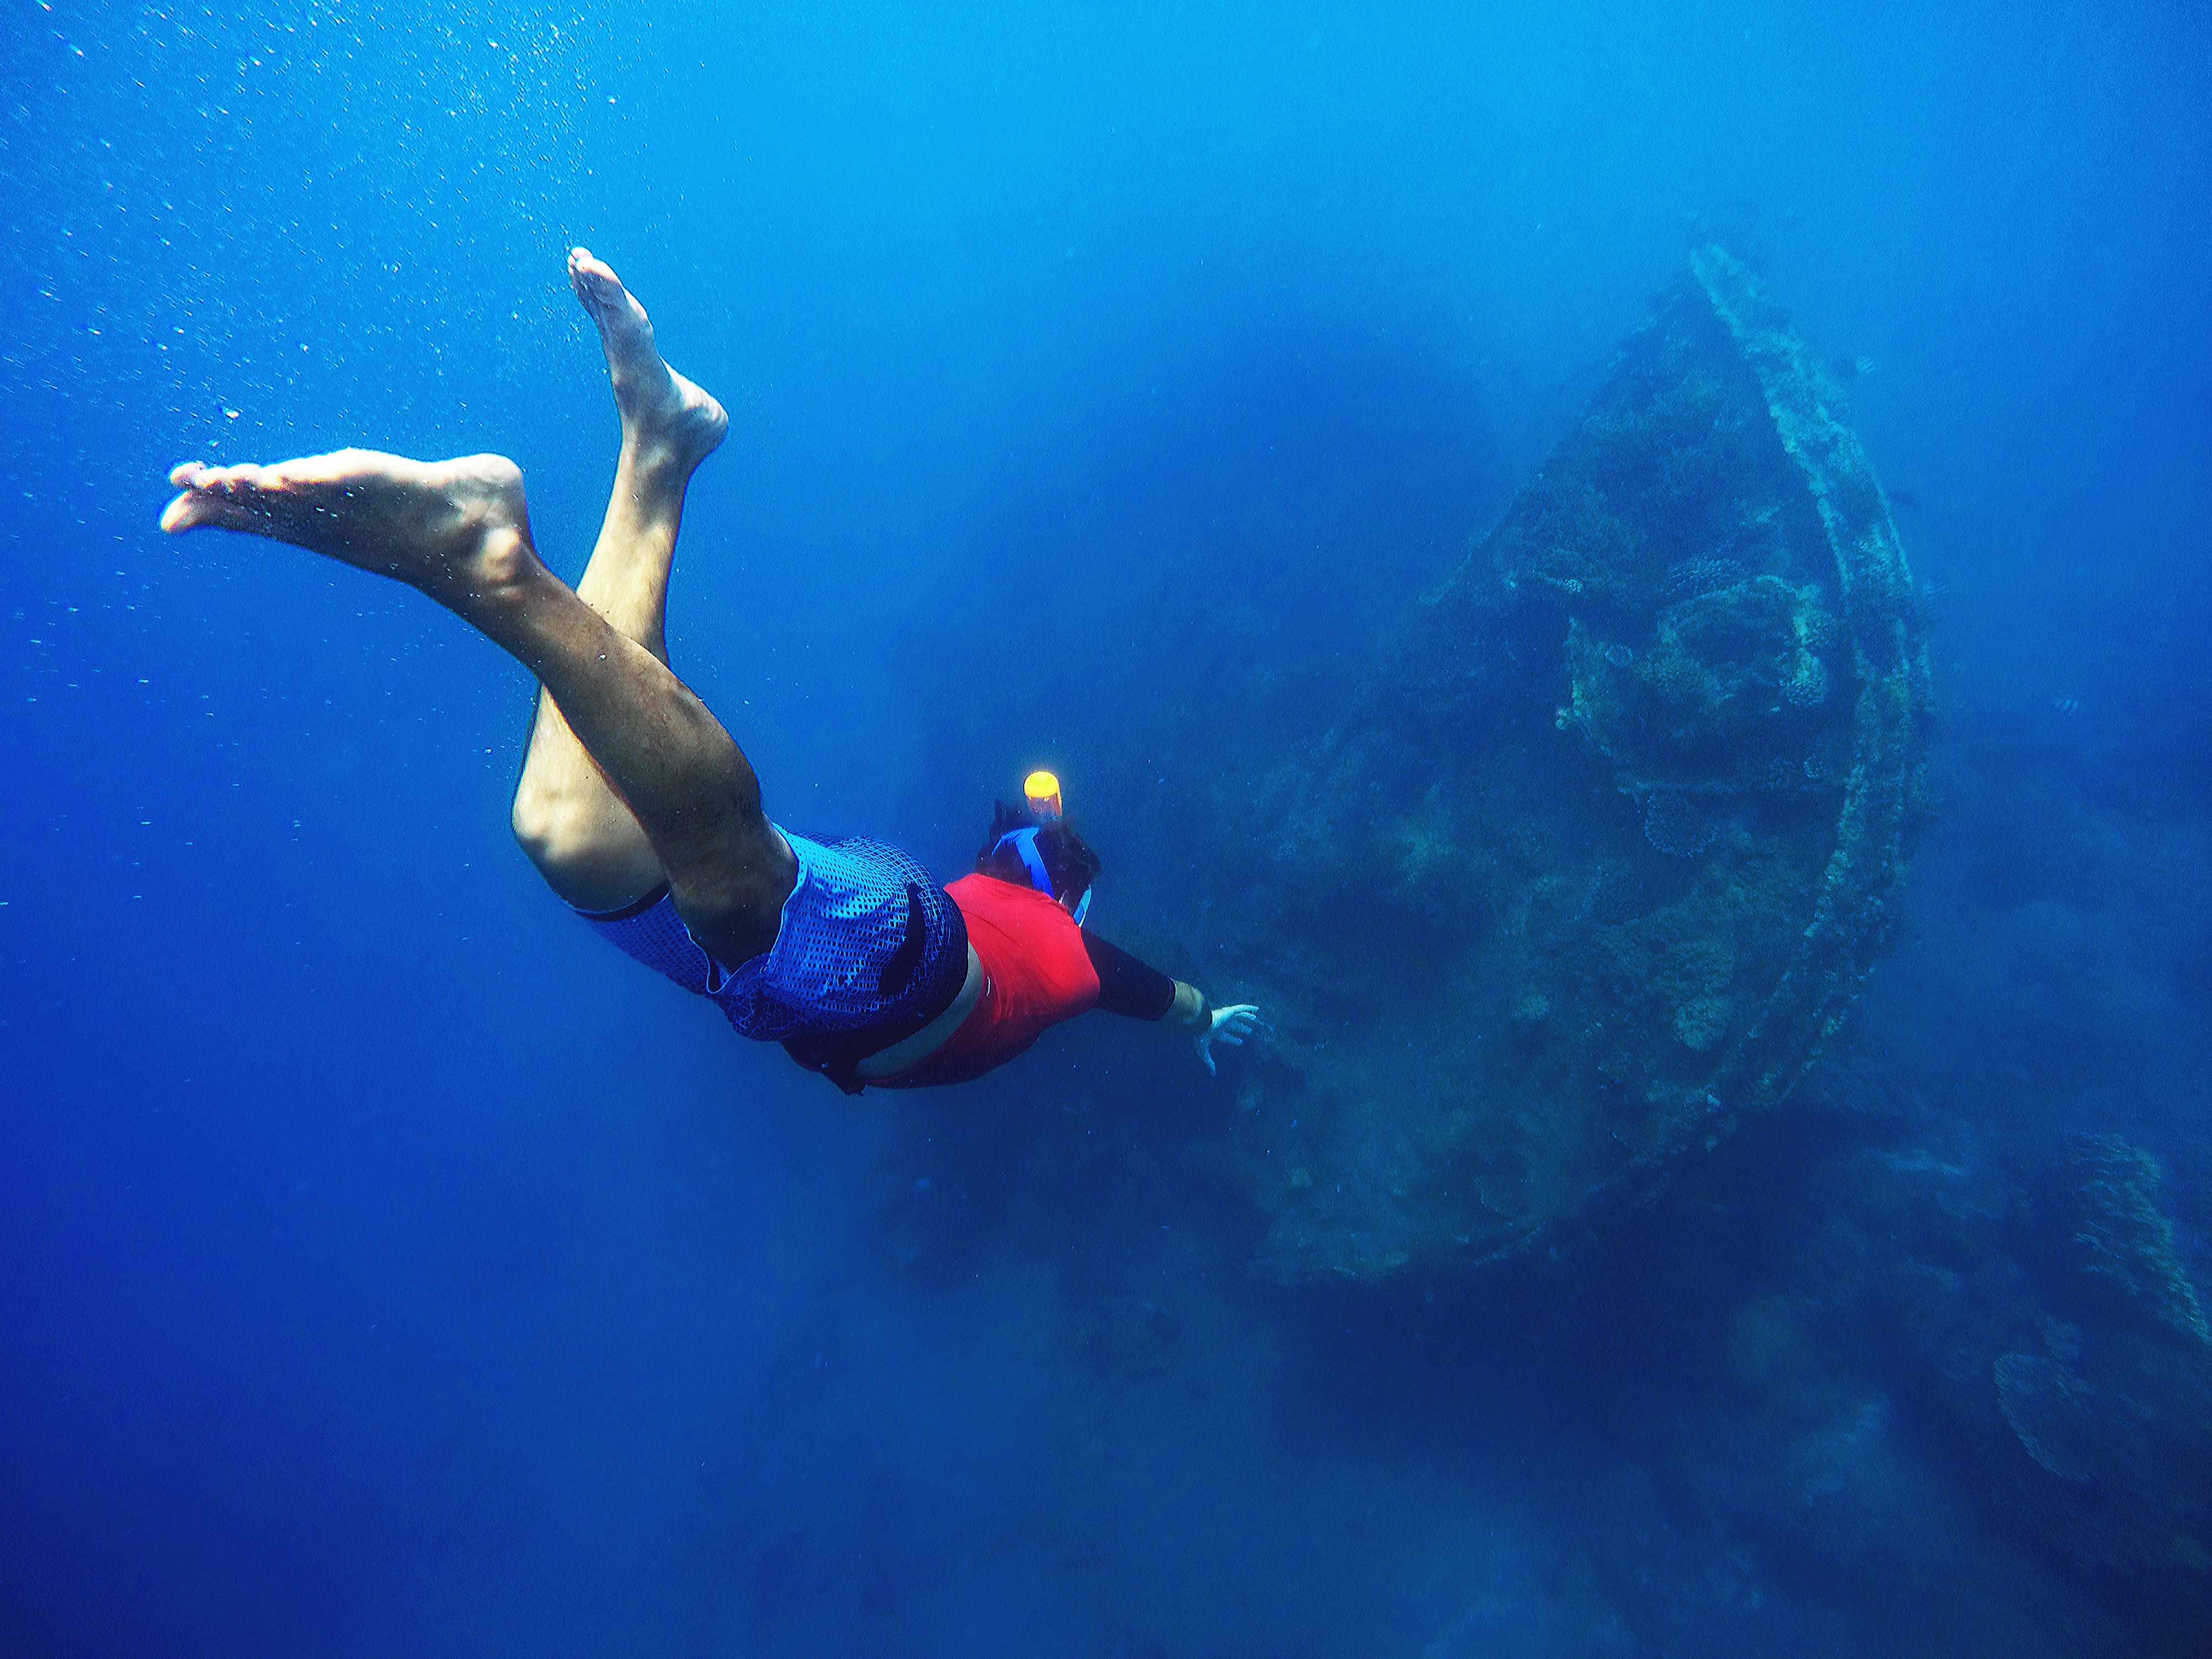 A freediver swimming down towards a wreck